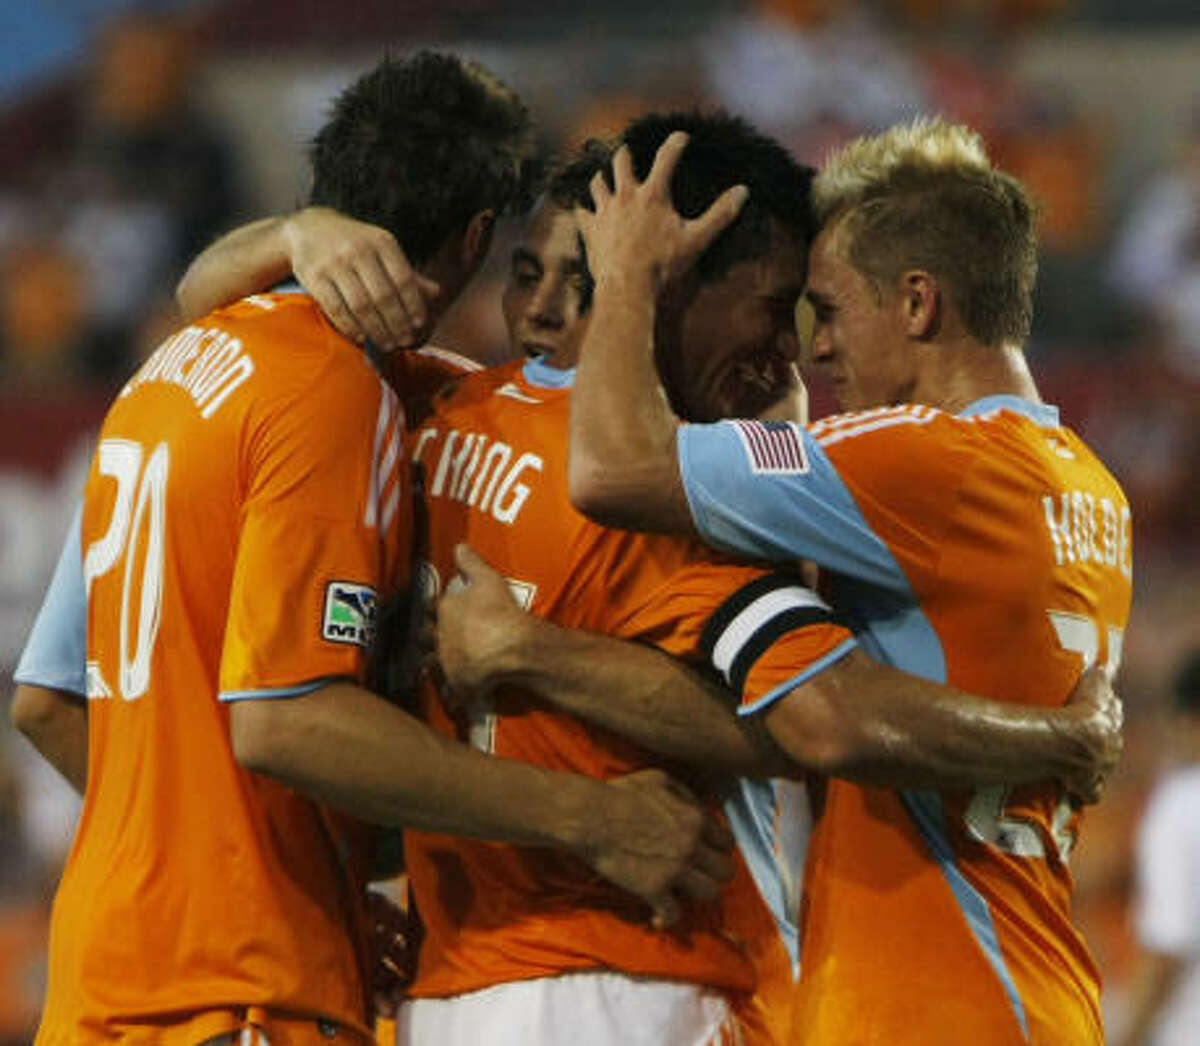 Aug. 1: Dynamo 4, D.C. 3 Houston Dynamo forward Brian Ching, center, is hugged by Stuart Holden, right, Geoff Cameron, left, and Brad Davis after scoring the team's second goal. The Dynamo scored three goals in four minutes during the first en route to a 4-3 win over D.C. United on Saturday at Robertson Stadium in Houston.